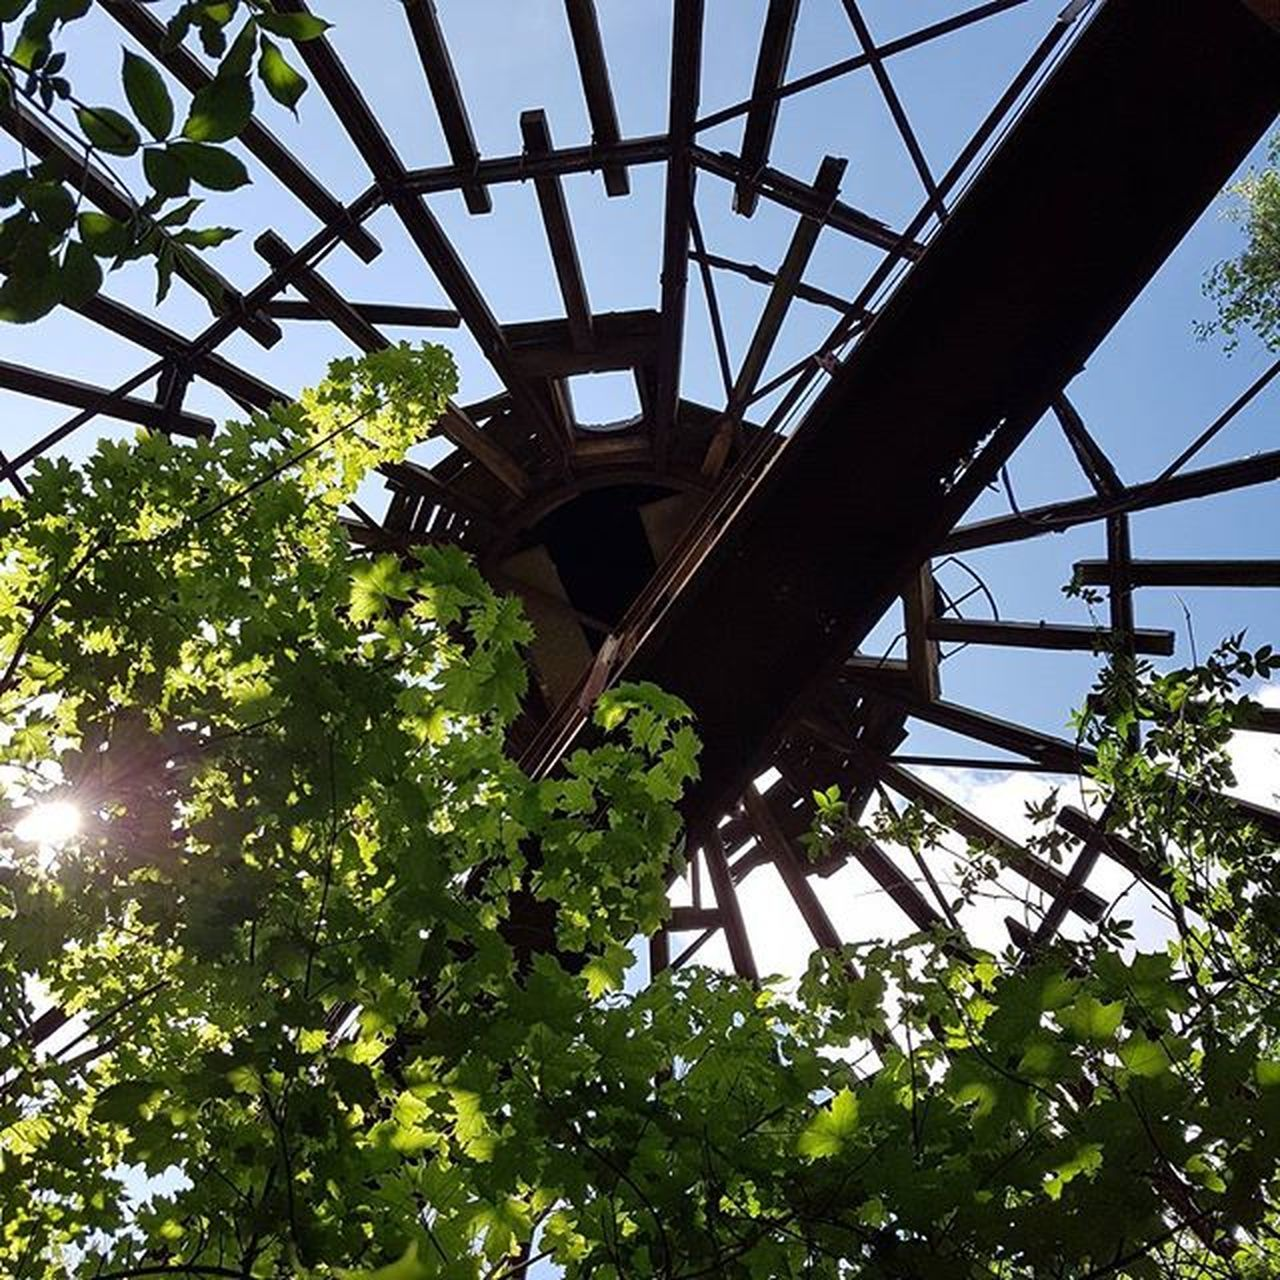 low angle view, tree, green color, outdoors, day, growth, leaf, no people, built structure, architecture, nature